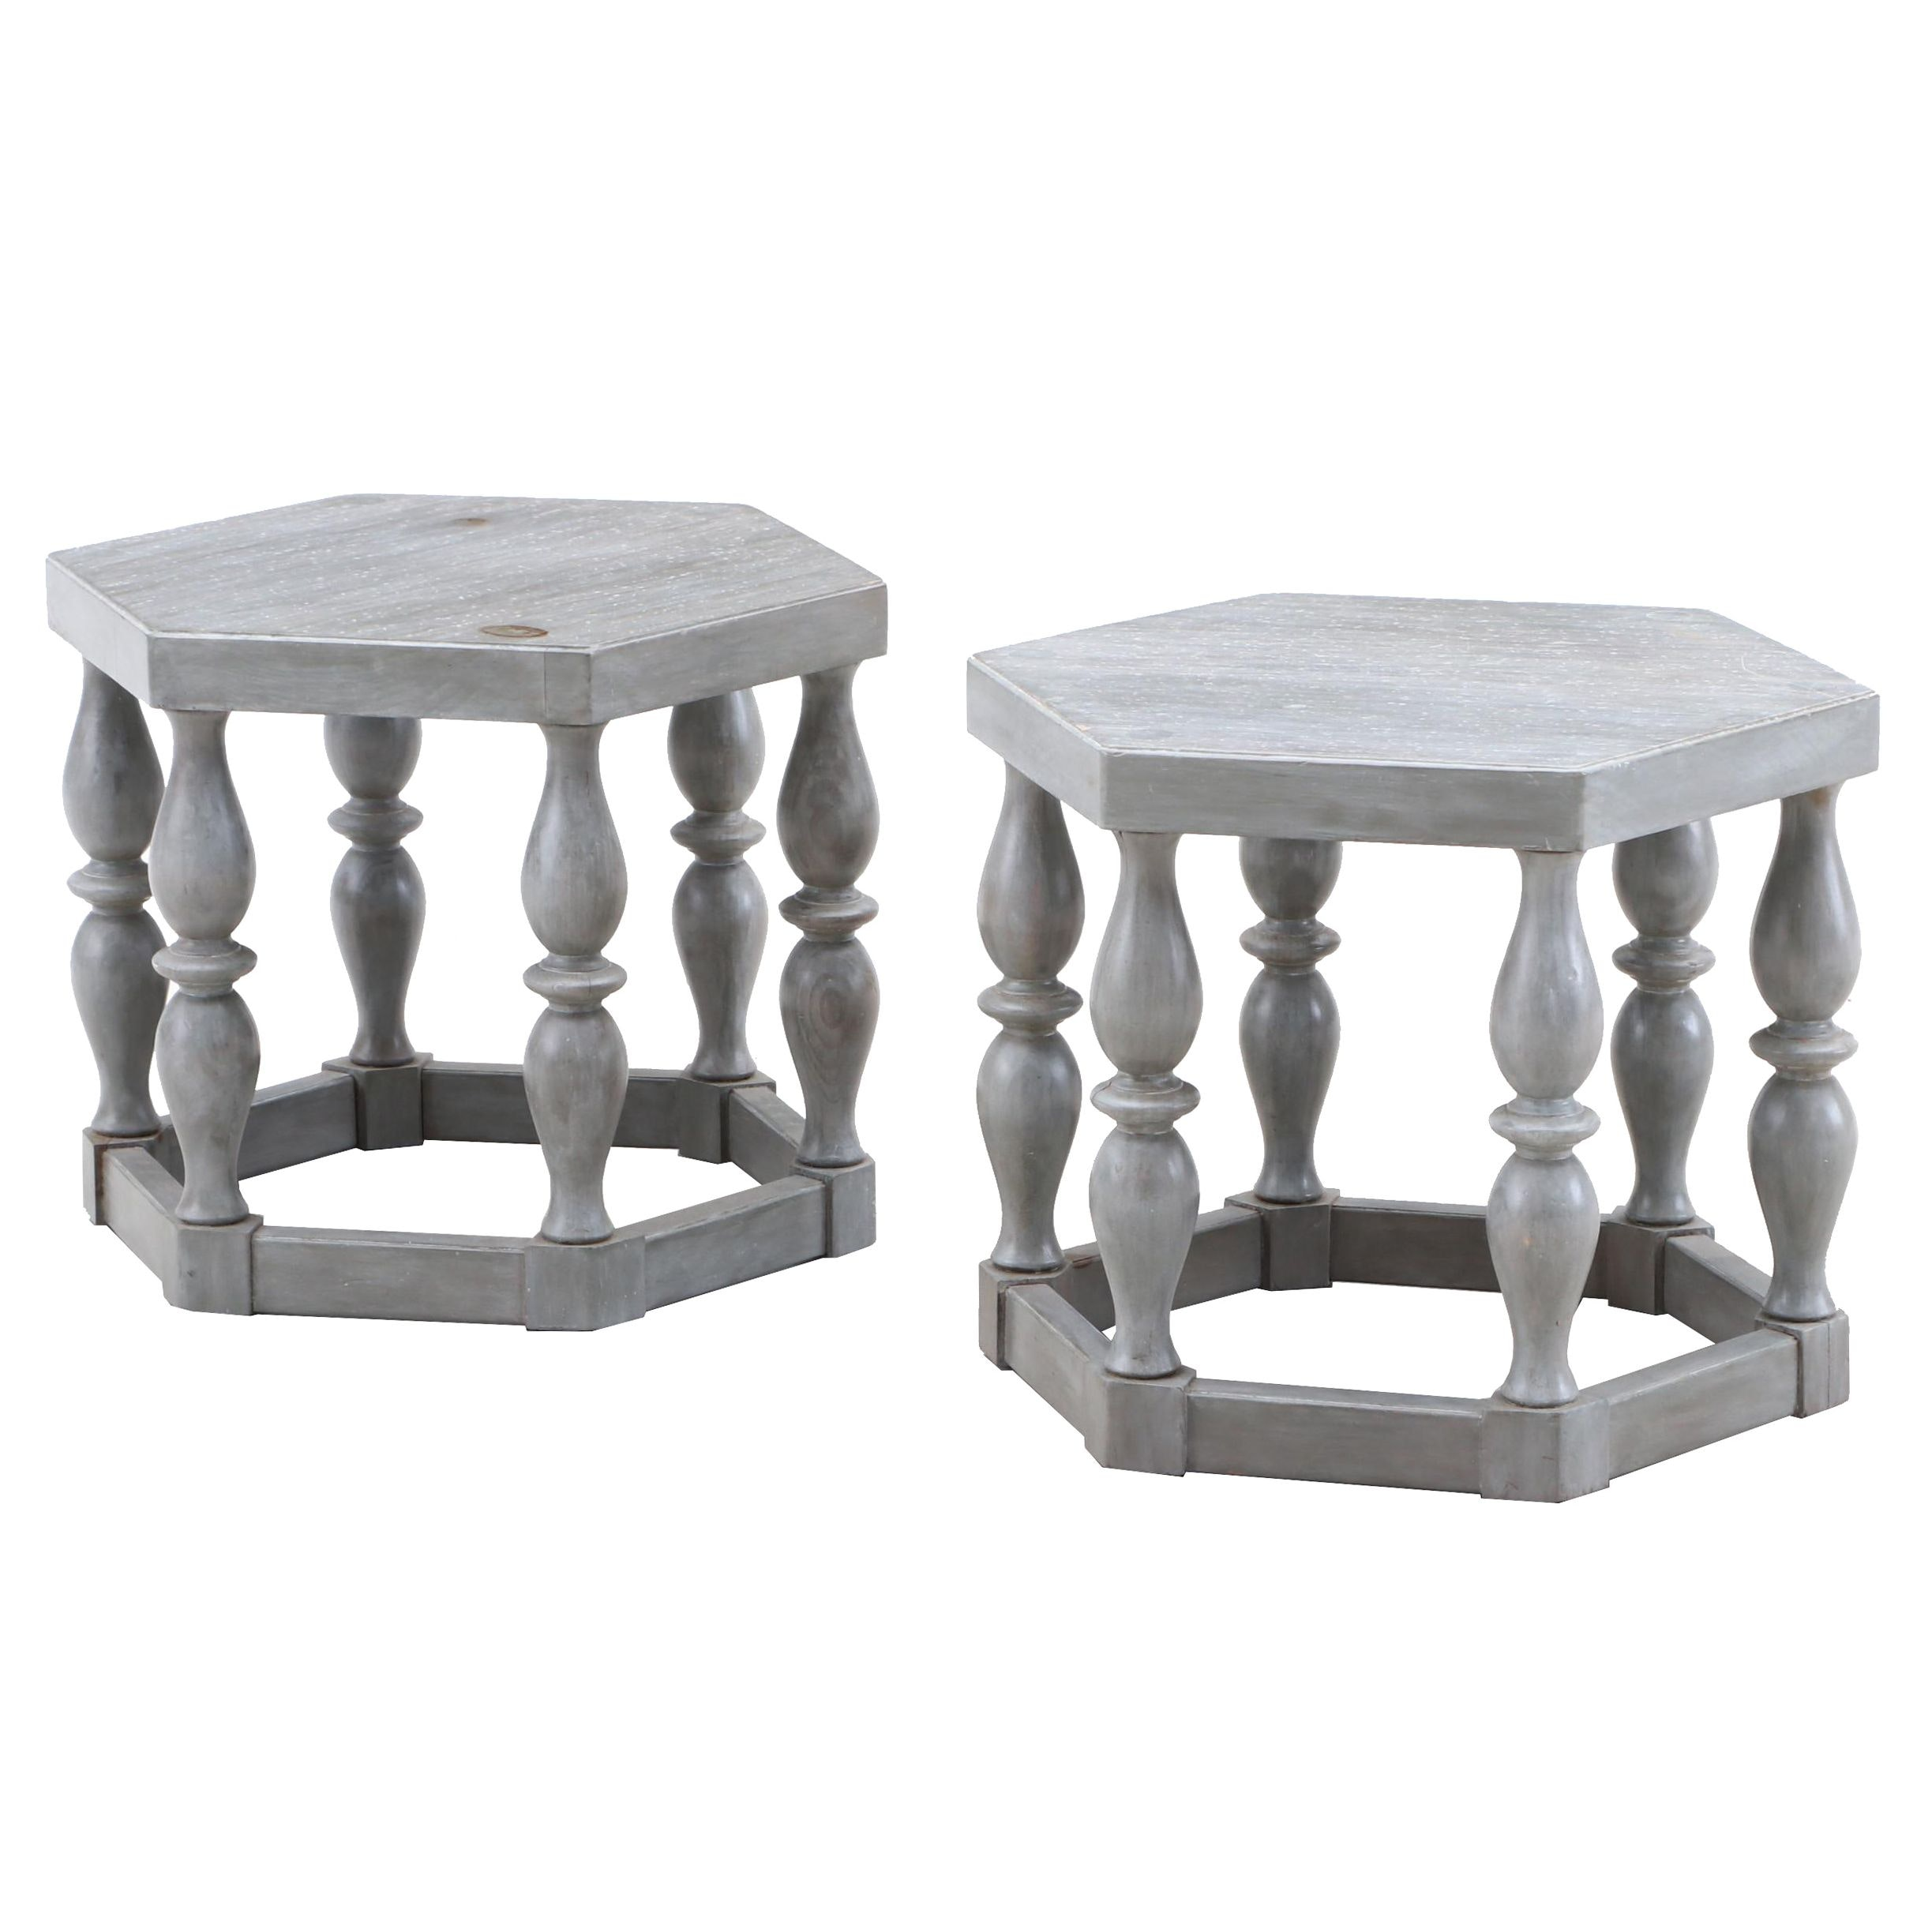 Hexagonal End Tables by Thomasville